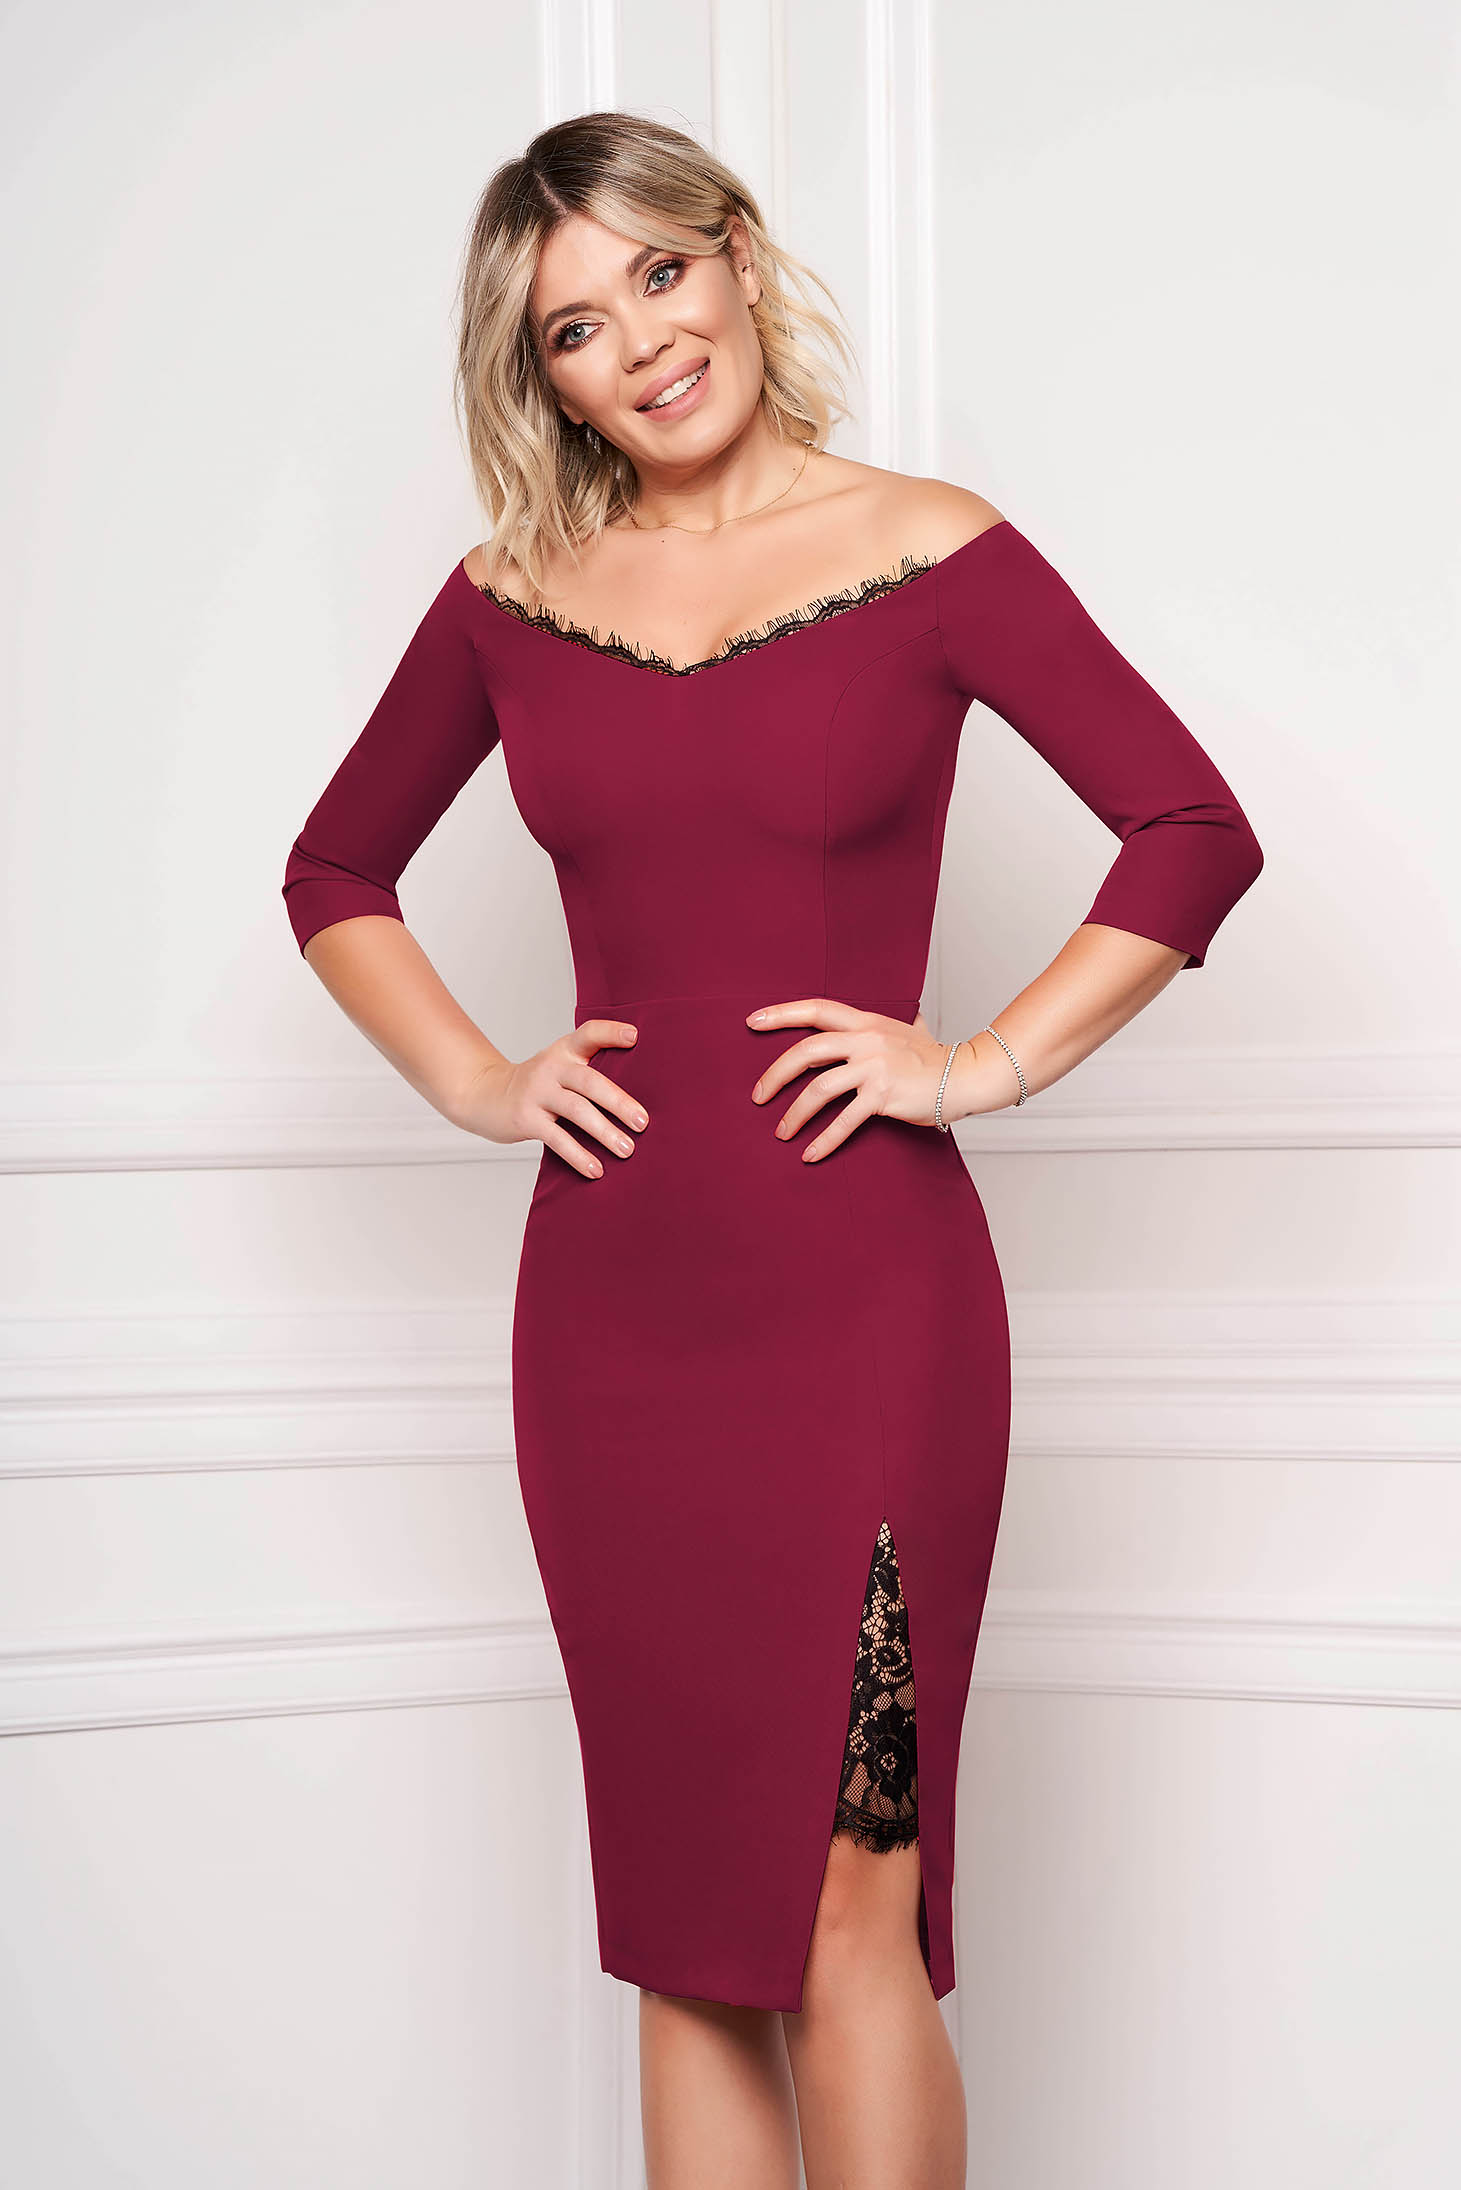 StarShinerS raspberry dress elegant midi pencil cloth thin fabric with 3/4 sleeves naked shoulders with lace details